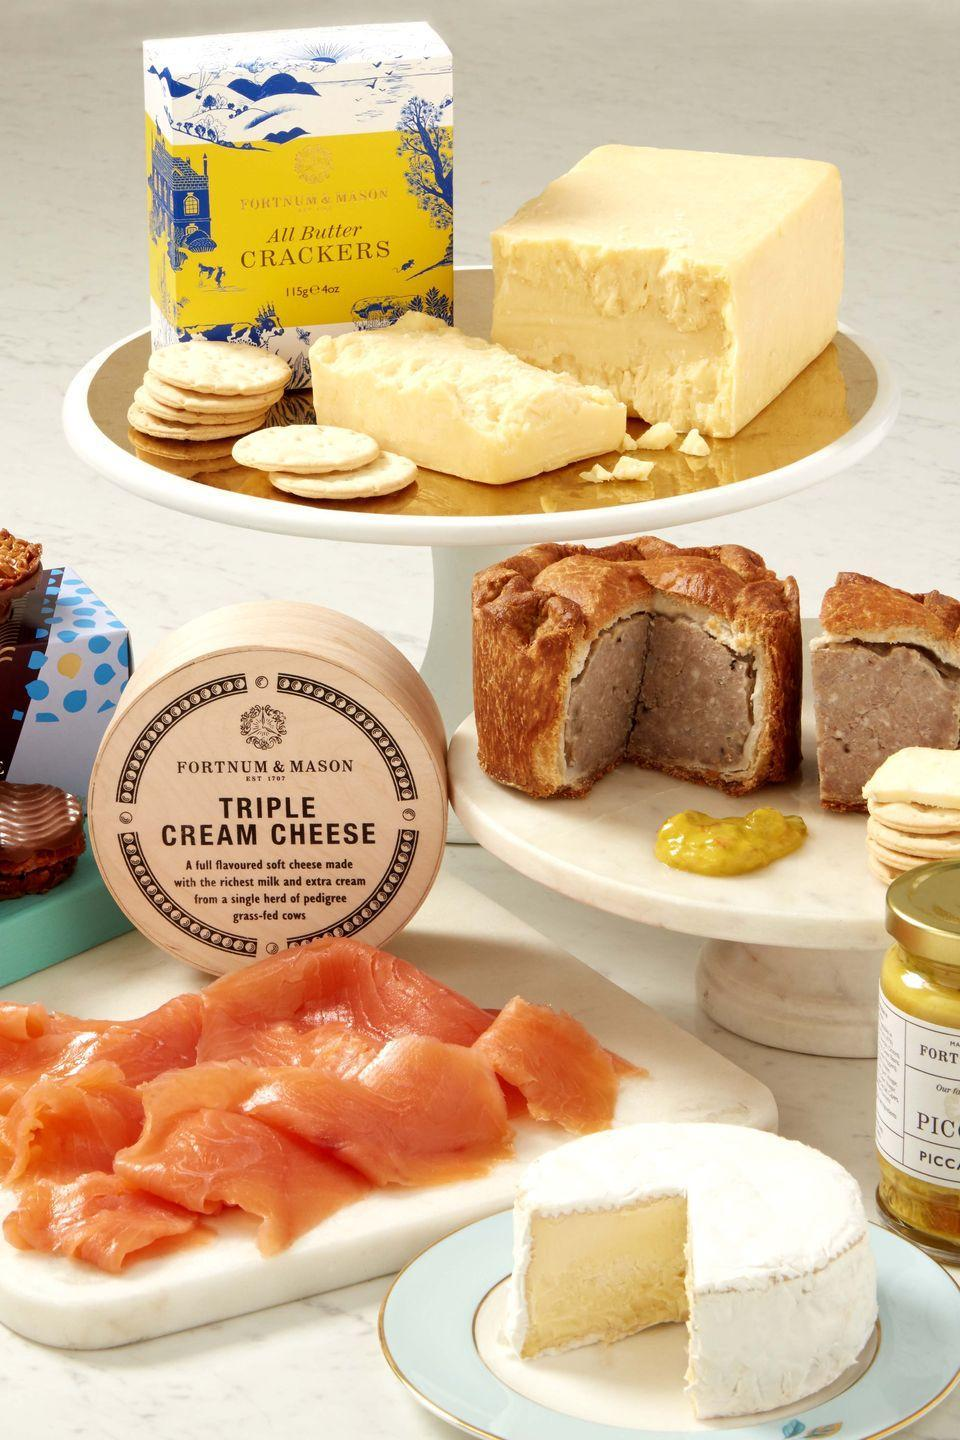 "<p>Nothing says picnic season quite like a Fortnum & Mason spread, and for summer 2020 there's an exciting selection of new offerings to fill your hamper up to the brim with. Alongside iconic favourites like Fortnum's traditional scotch eggs (£22 for six), smoked cheese straws (£5.95 per box) and jars of Piccalilli (£10.95), why not try a pot of truffle & honey stilton (£14.95), or chicken, roasted red pepper and nduja pie (£7.95). Drinks-wise, you can't beat a chilled bottle of non-alcoholic sparkling tea or a refreshing glass of the apricot and cherry cold brew infusion. The Food Halls of the Piccadilly and St Pancras International stores are now open.</p><p><a href=""https://www.fortnumandmason.com"" rel=""nofollow noopener"" target=""_blank"" data-ylk=""slk:www.fortnumandmason.com"" class=""link rapid-noclick-resp"">www.fortnumandmason.com</a></p>"